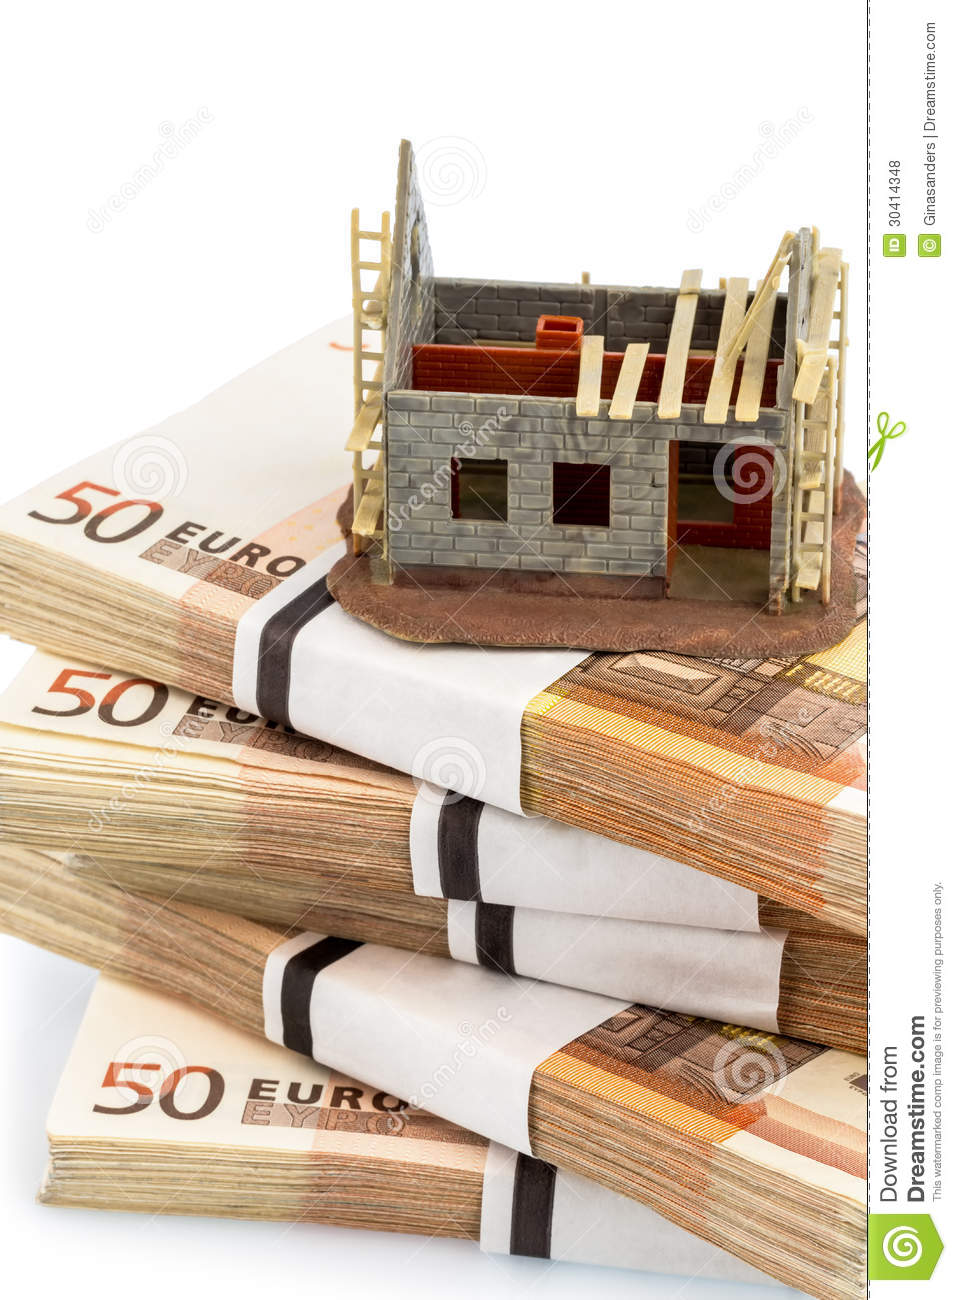 Structural work on euro banknotes royalty free stock for How does financing work when building a home